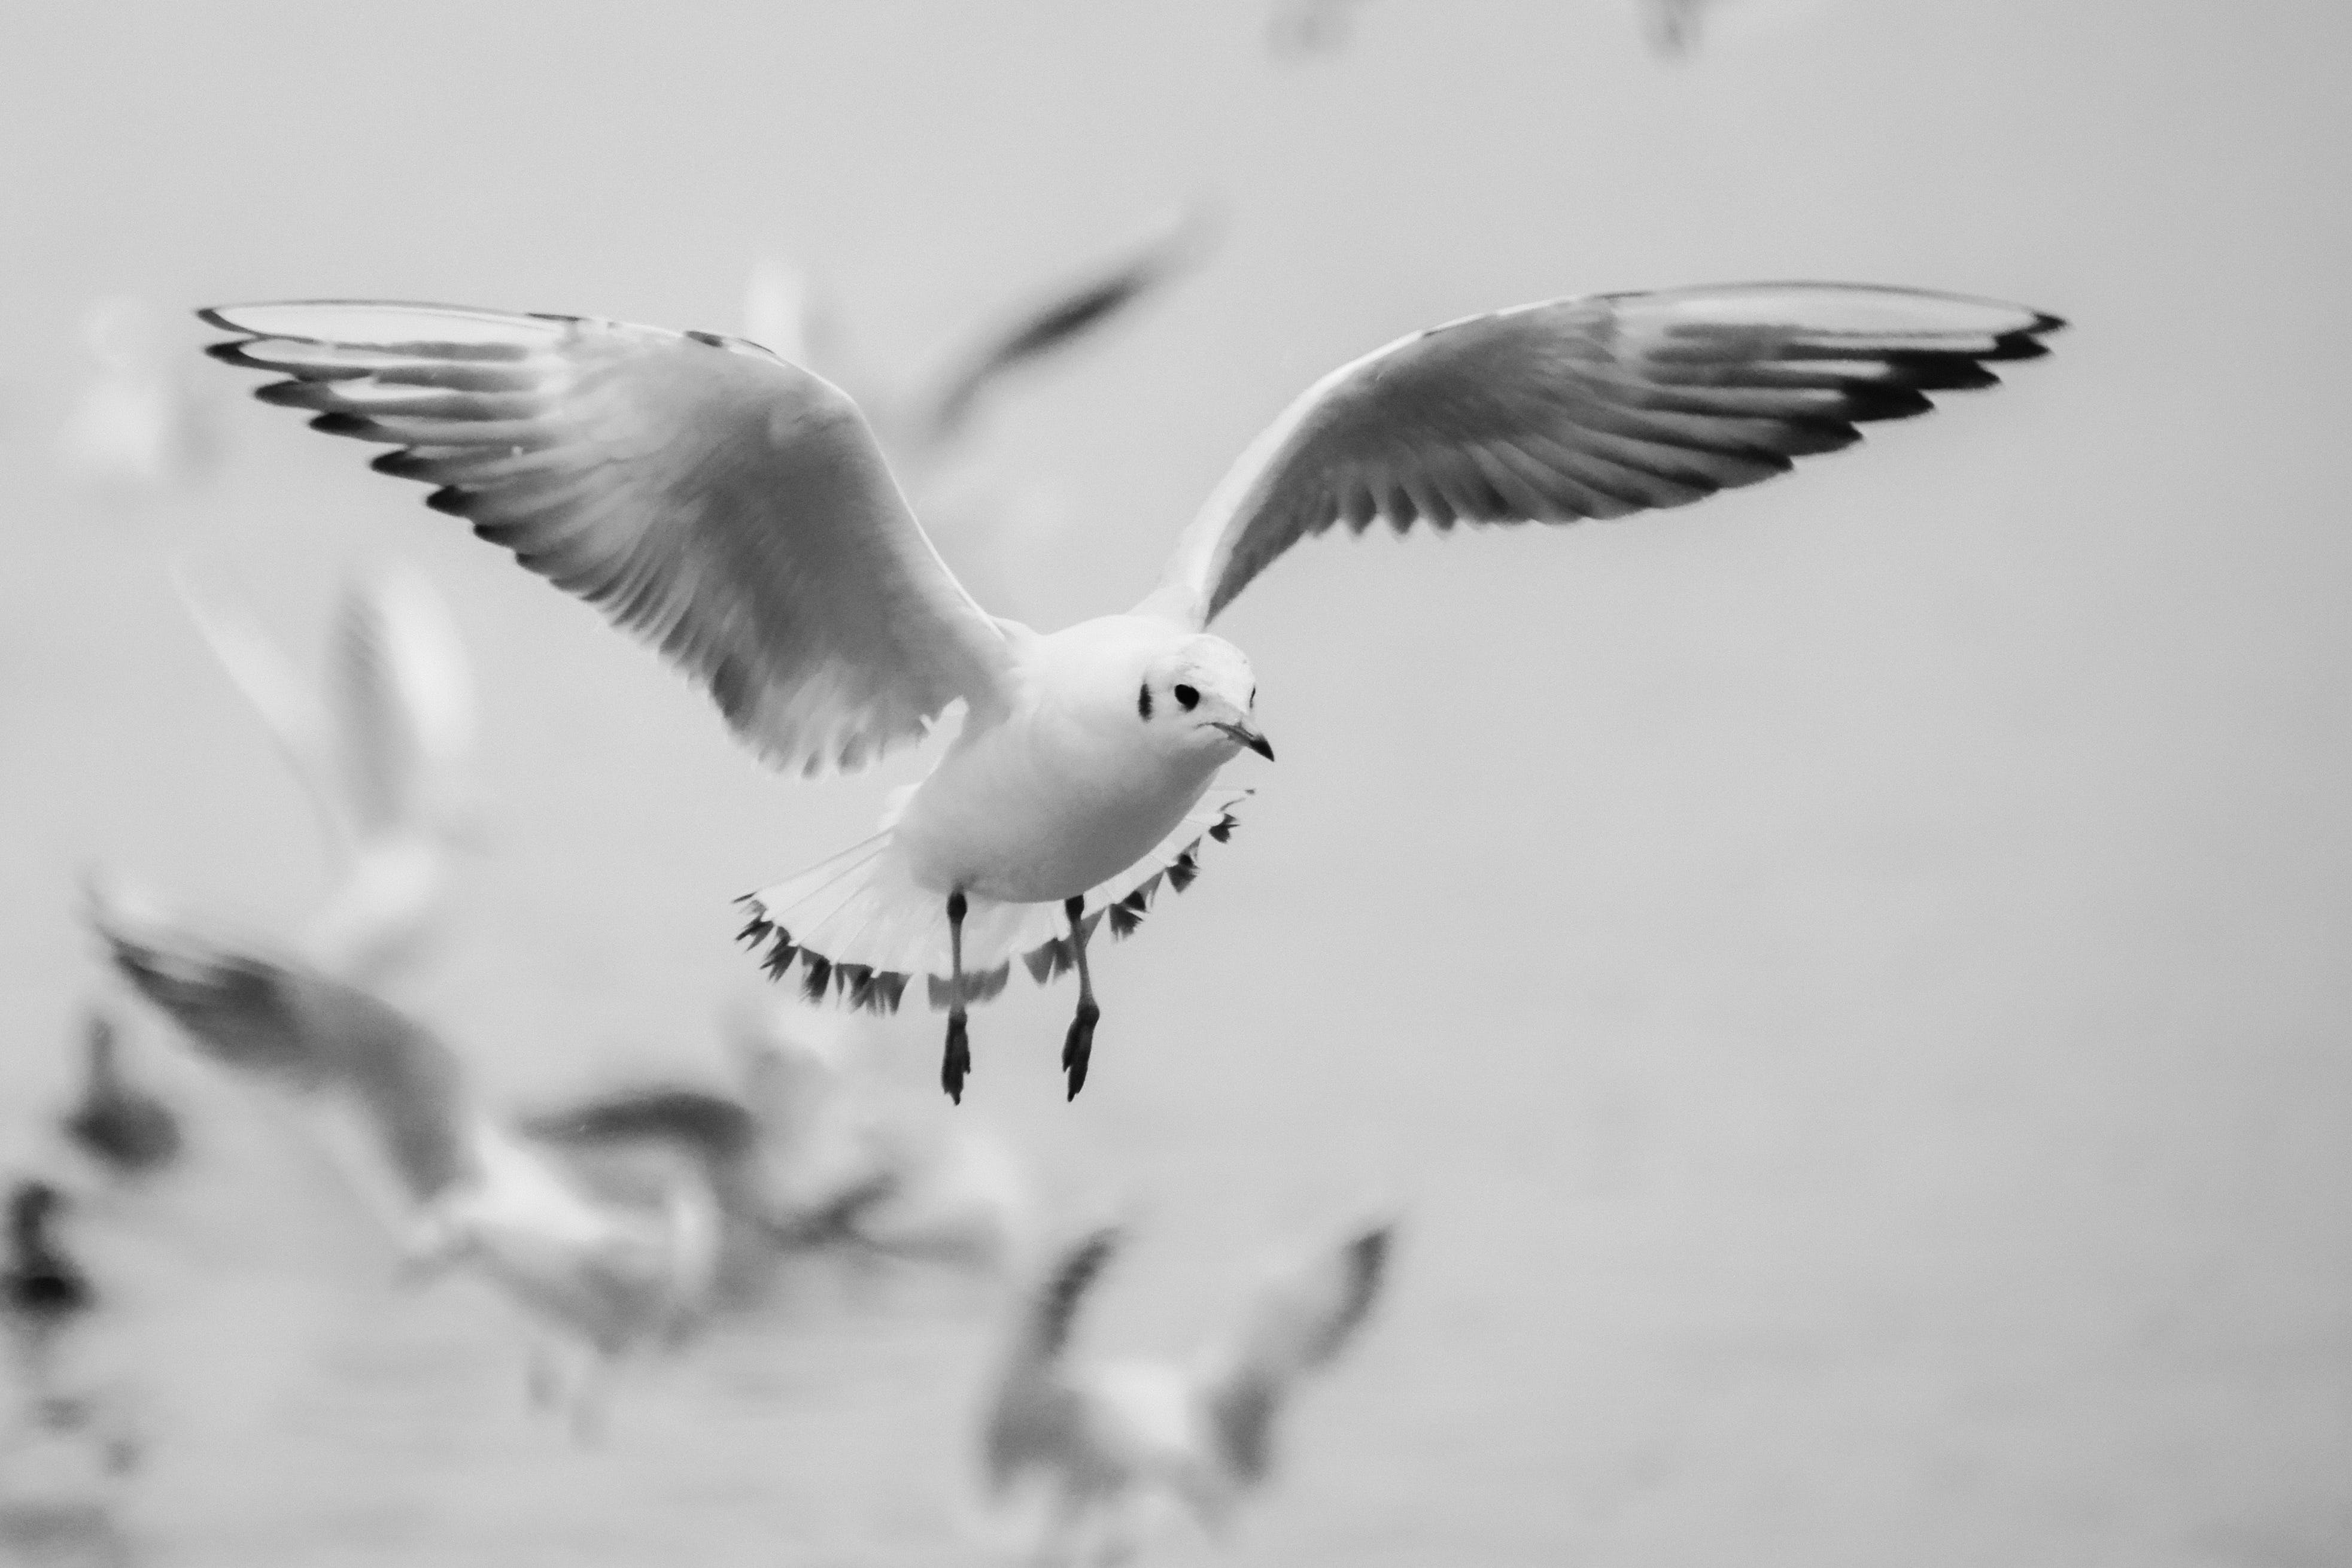 Grayscale Photo of Bird